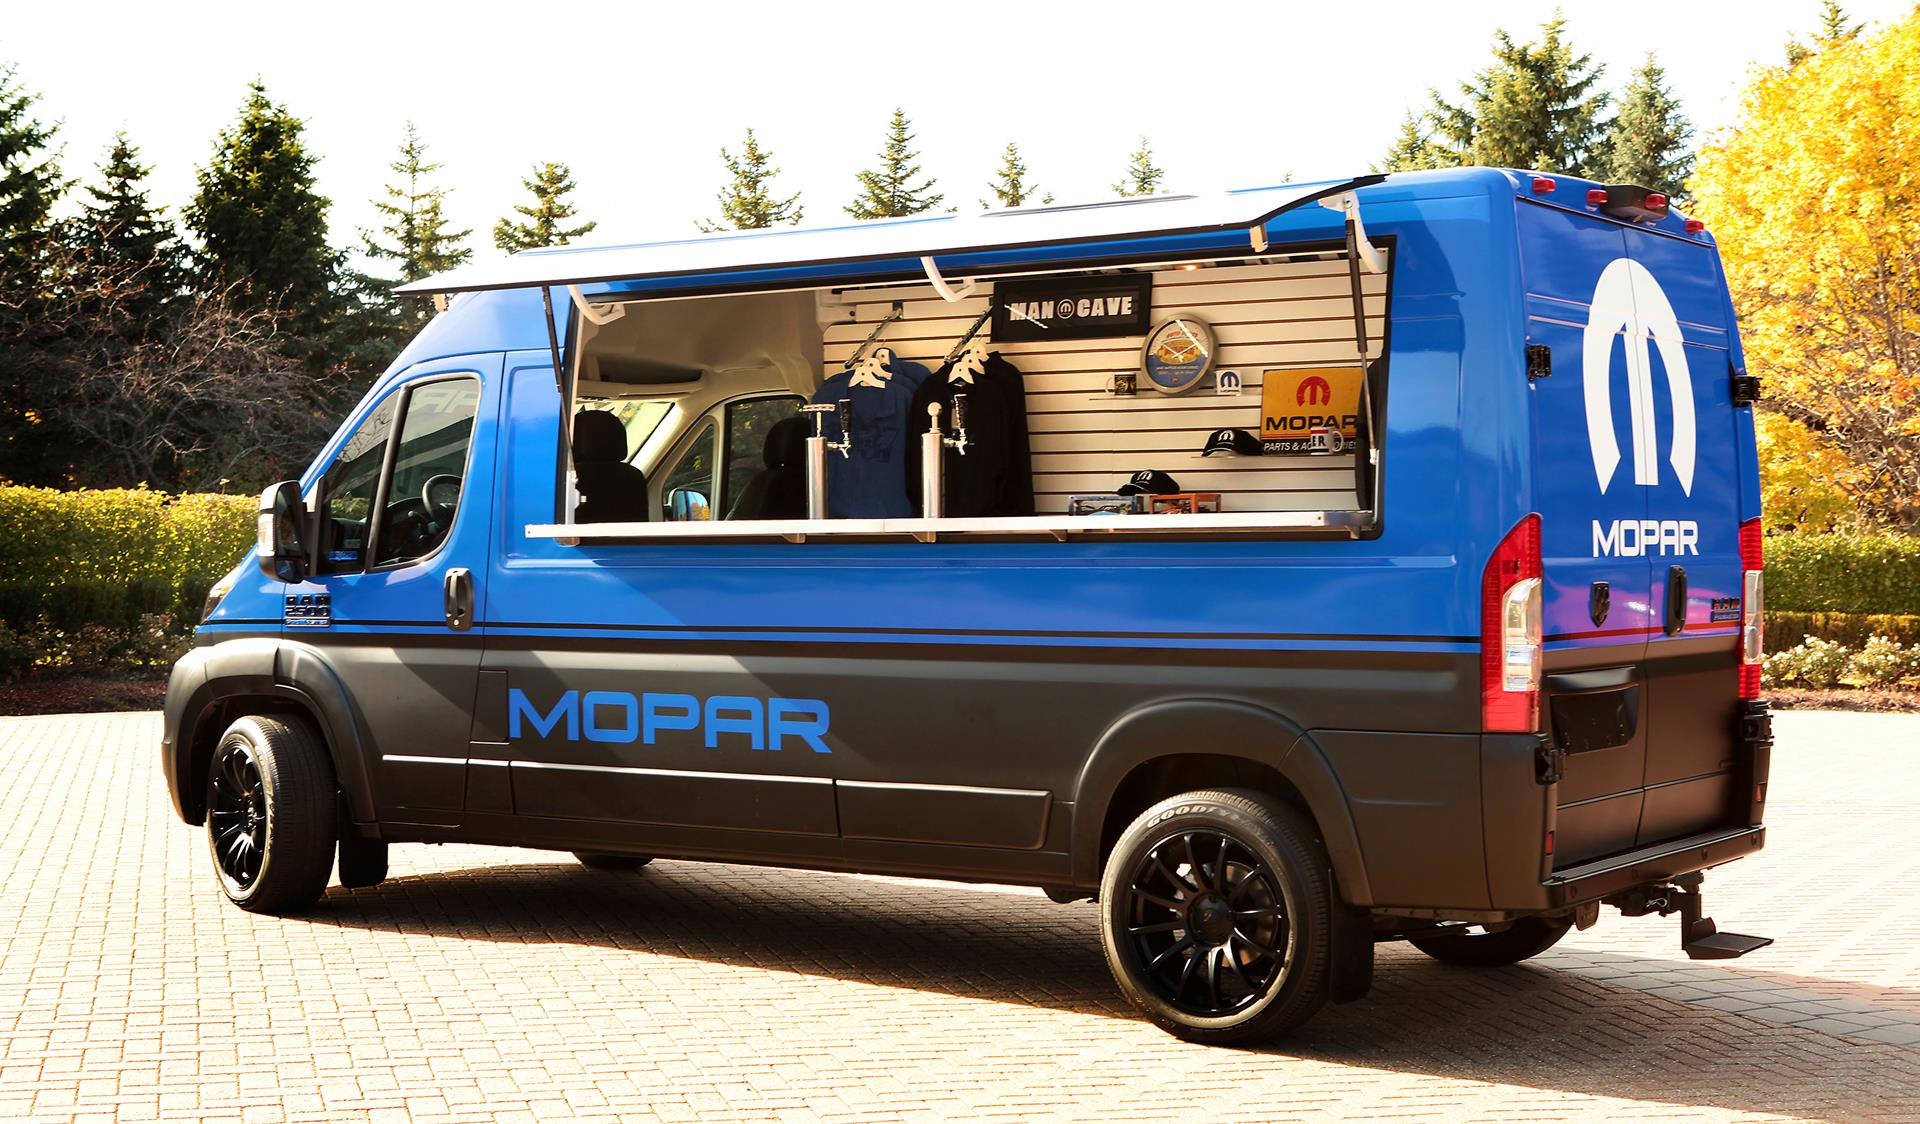 2014 ram promaster hospitality van. Black Bedroom Furniture Sets. Home Design Ideas